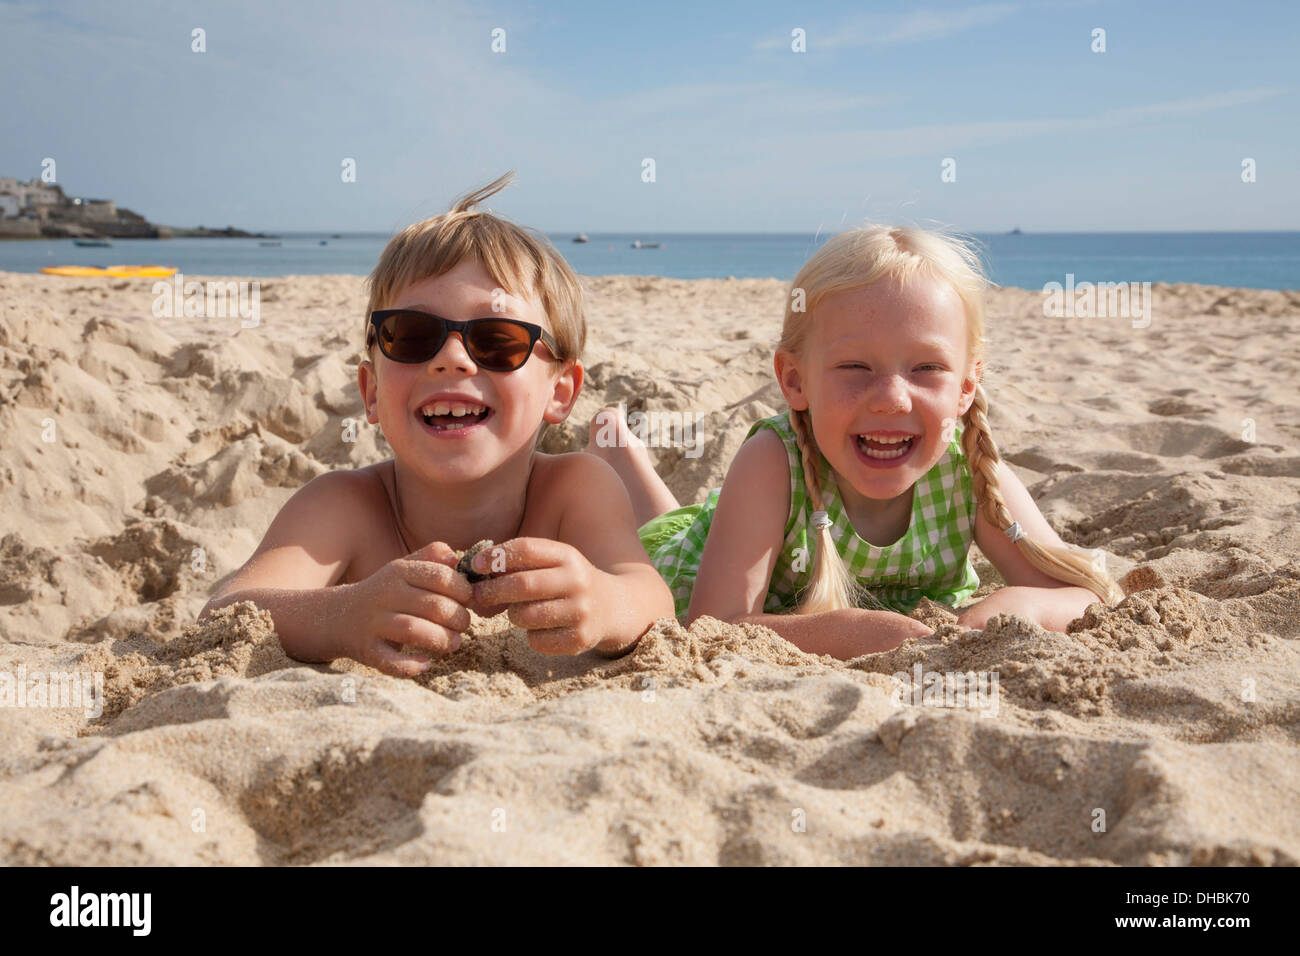 A boy and girl lying on their stomachs on the sand, laughing and looking at the camera. - Stock Image